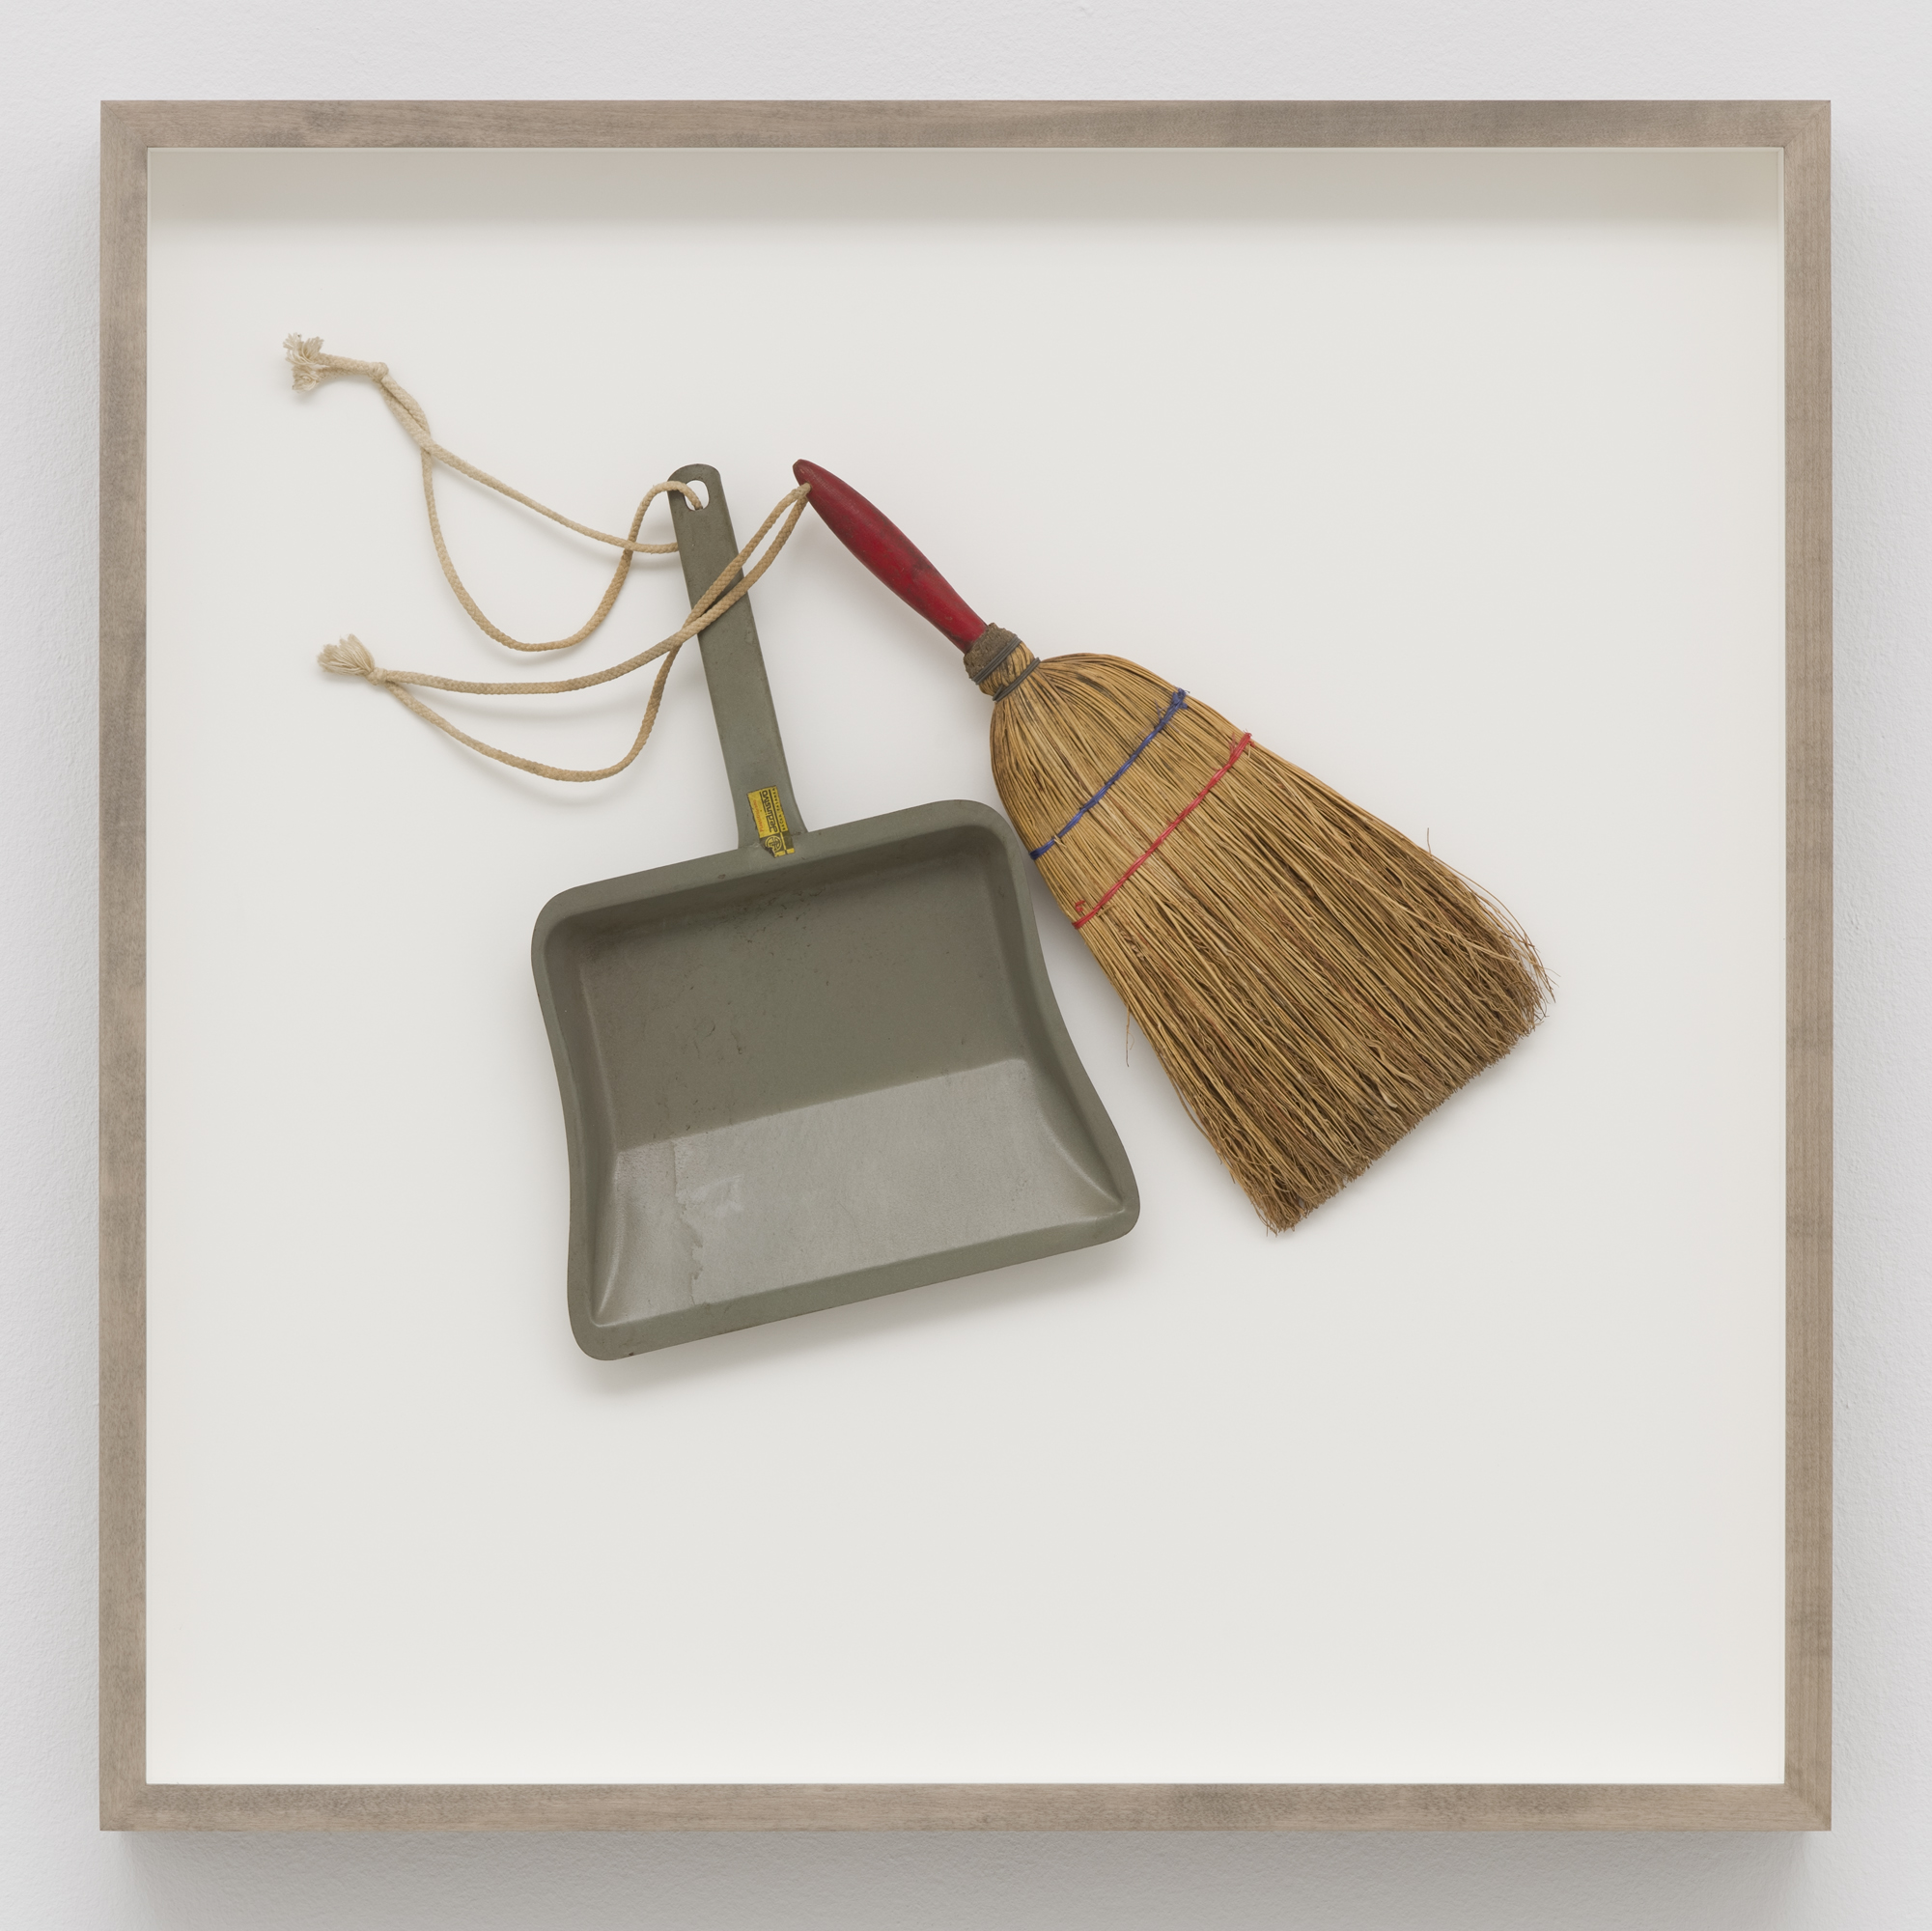 Cleaning of Public Spaces, artefact from the performance, broom with dustpan, 1981